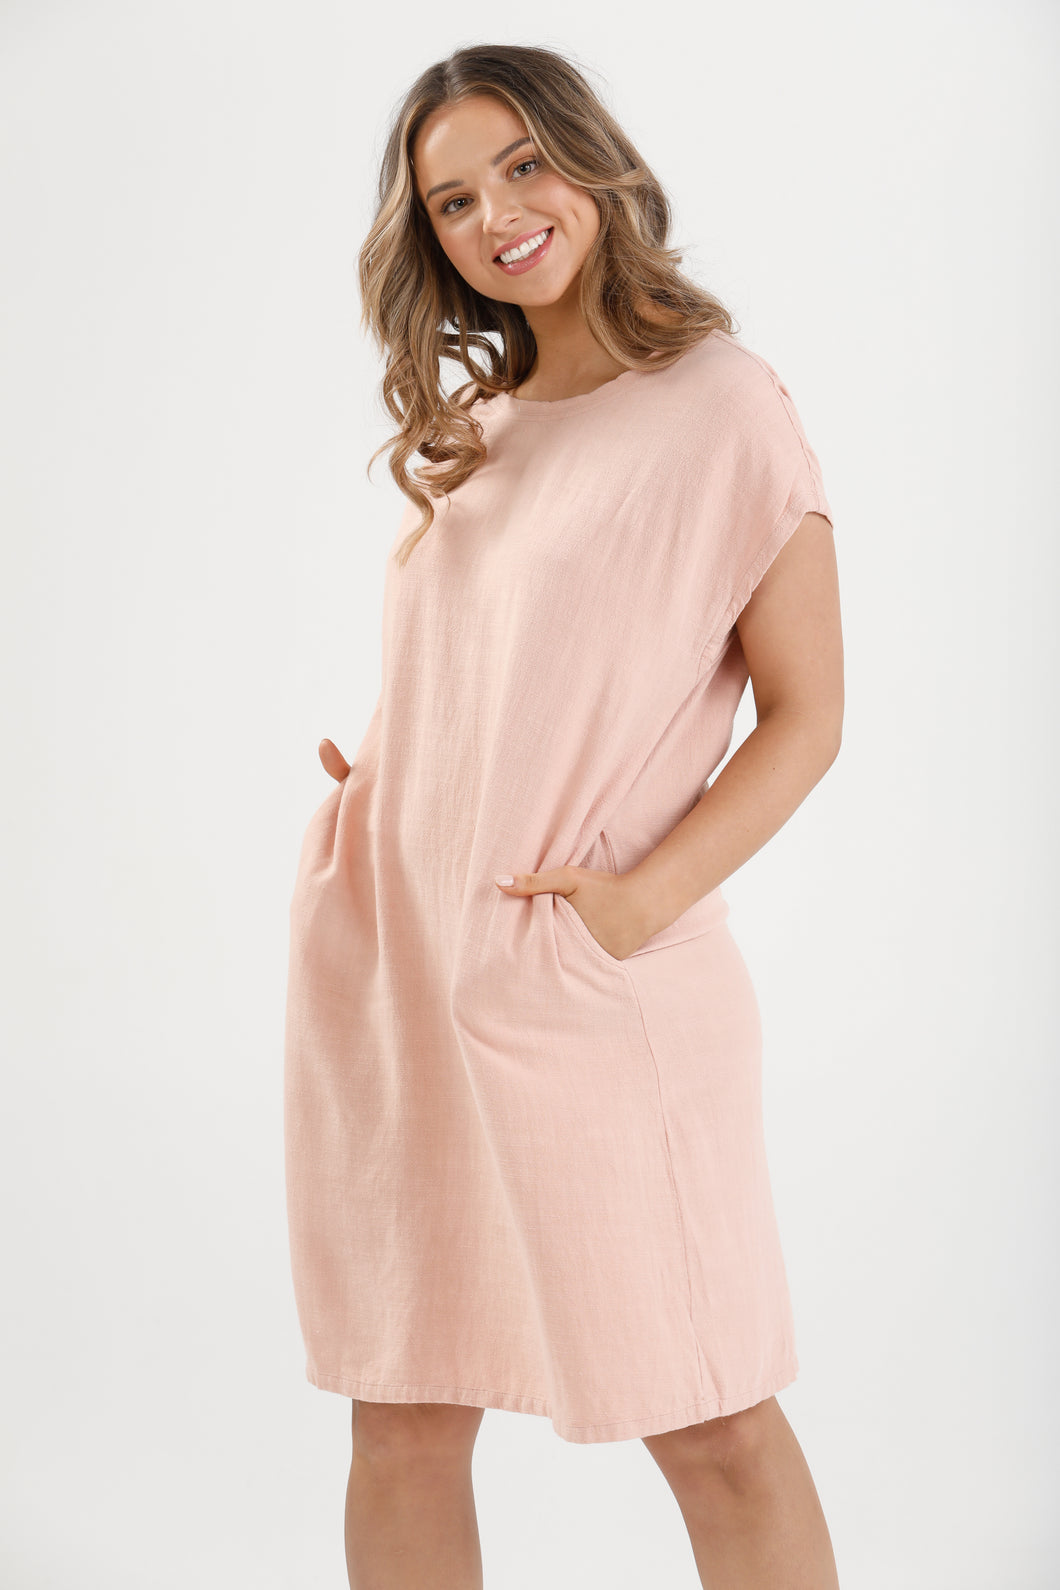 Homelove the Label Fancy Free Dress - Linen Viscose